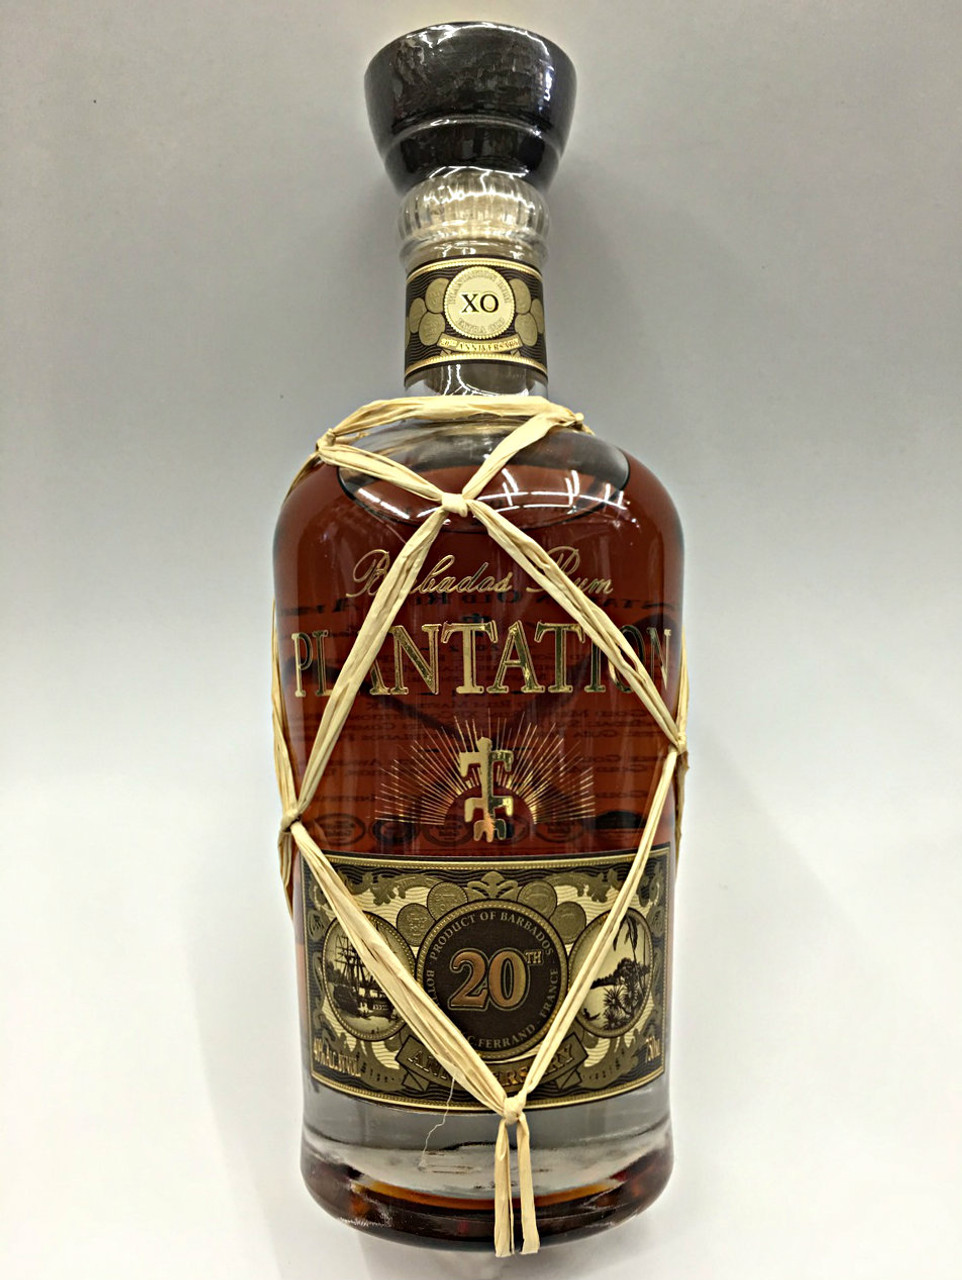 Plantation Barbados XO 20th Anniversary Rhum 5 Year Old ...